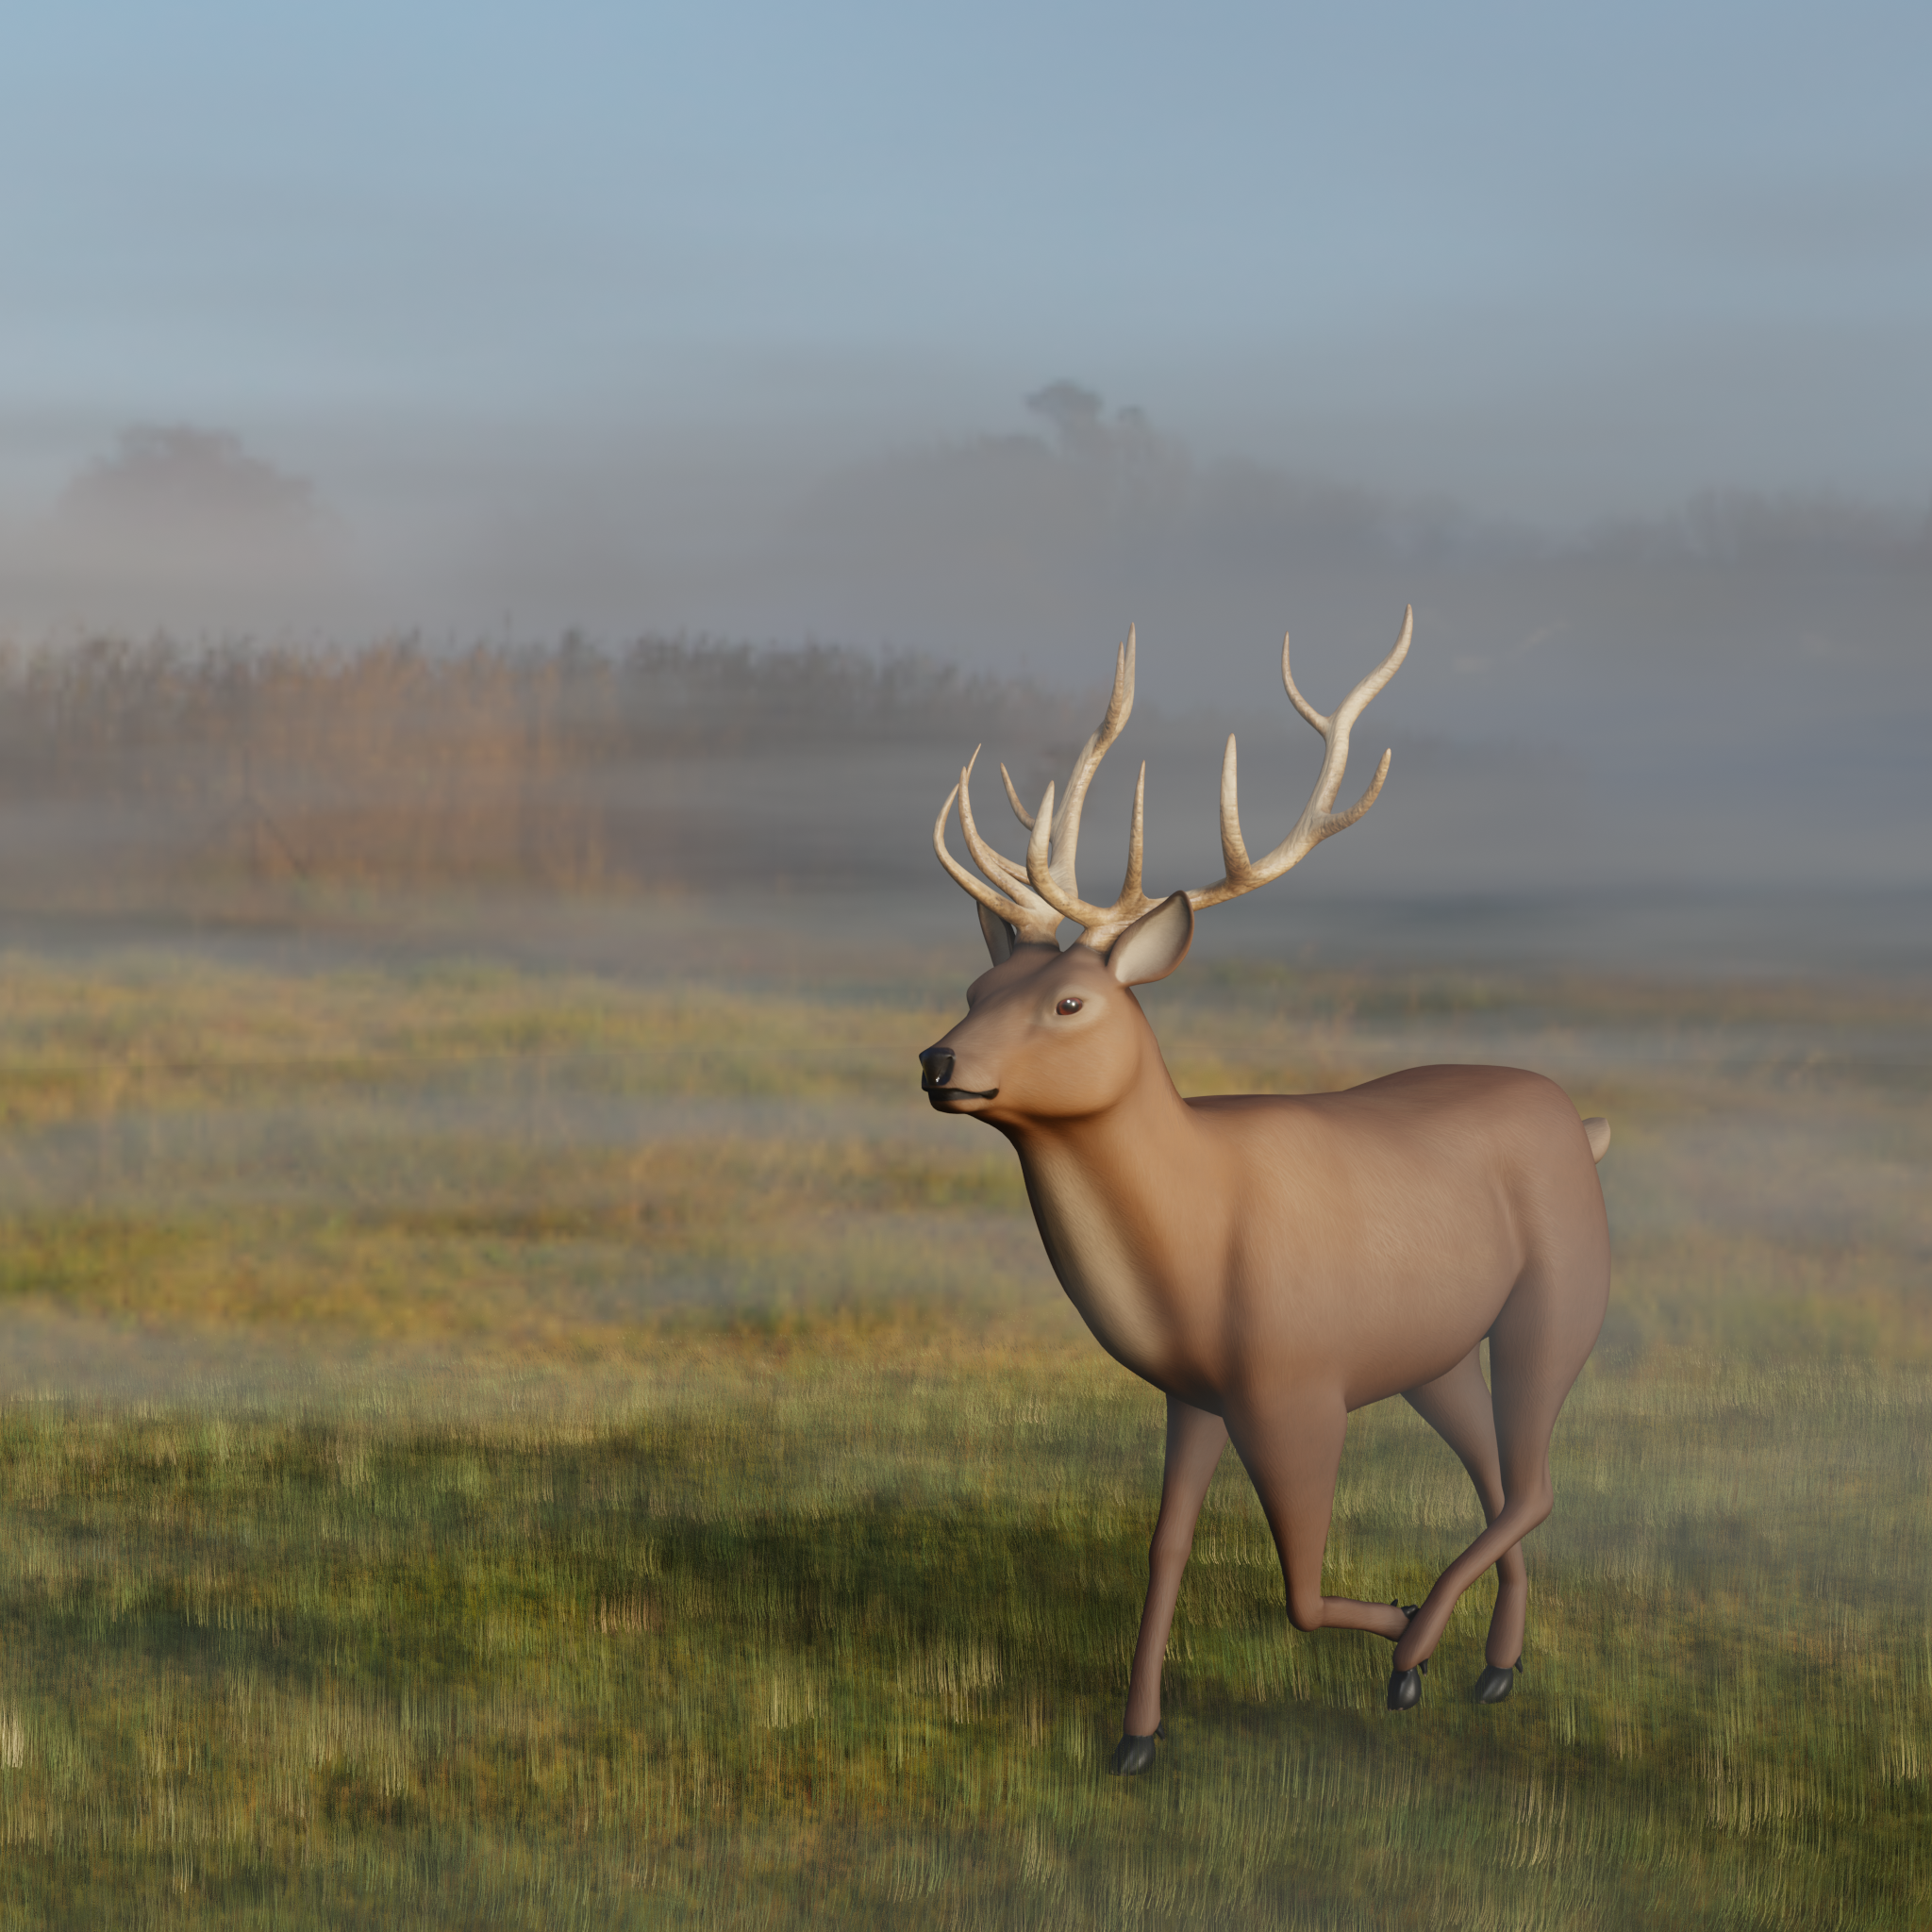 Deer Rigger 2 preview image 1